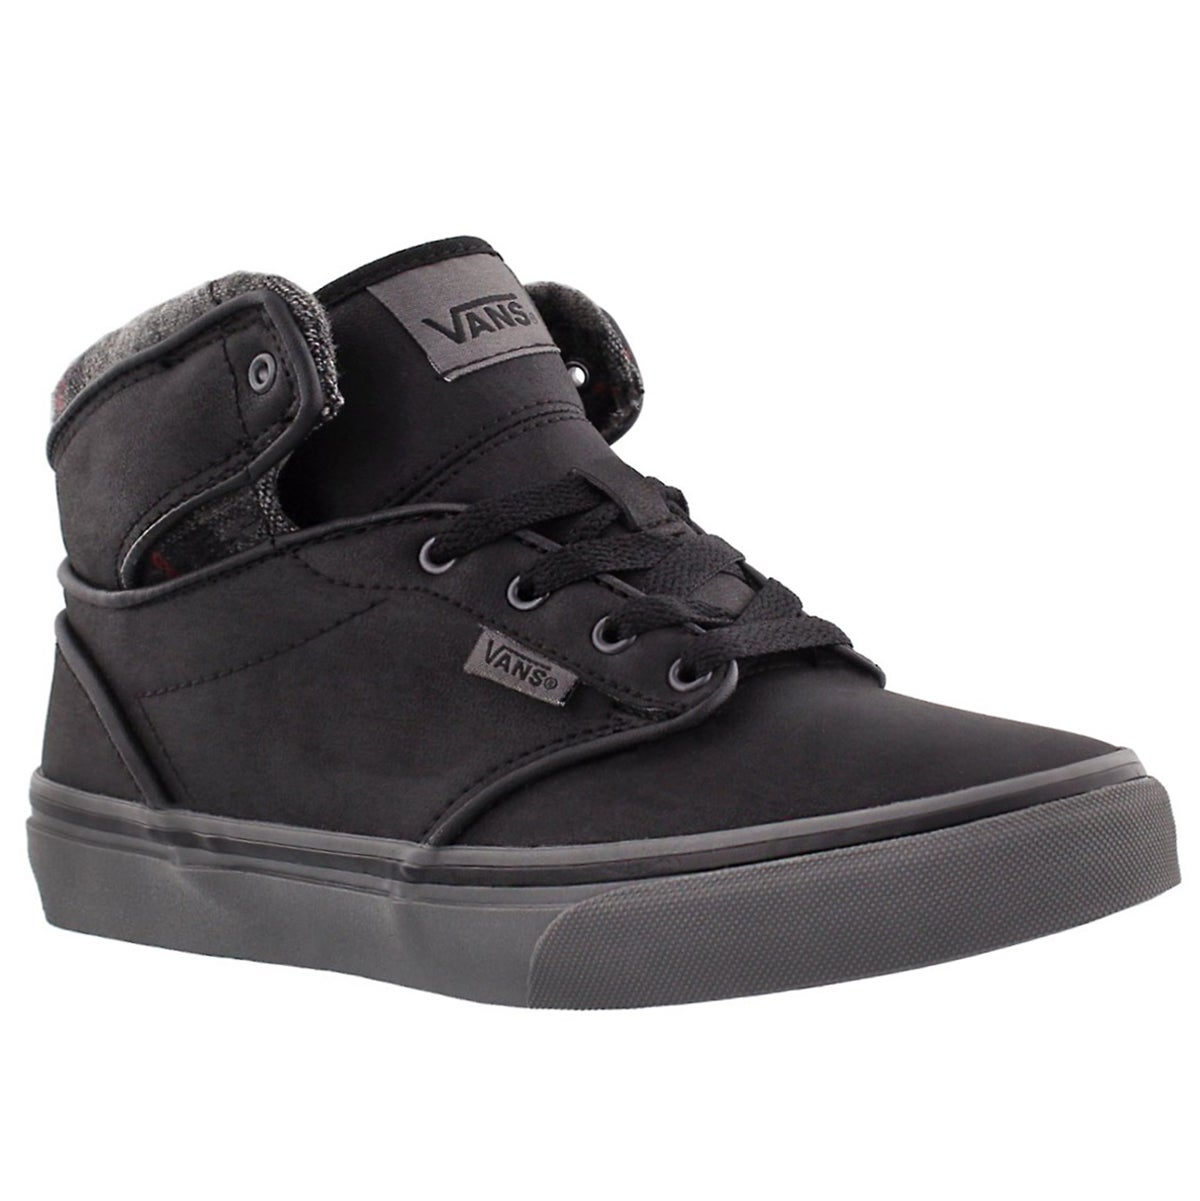 Bys Atwood Hi blk leathr lace up sneaker